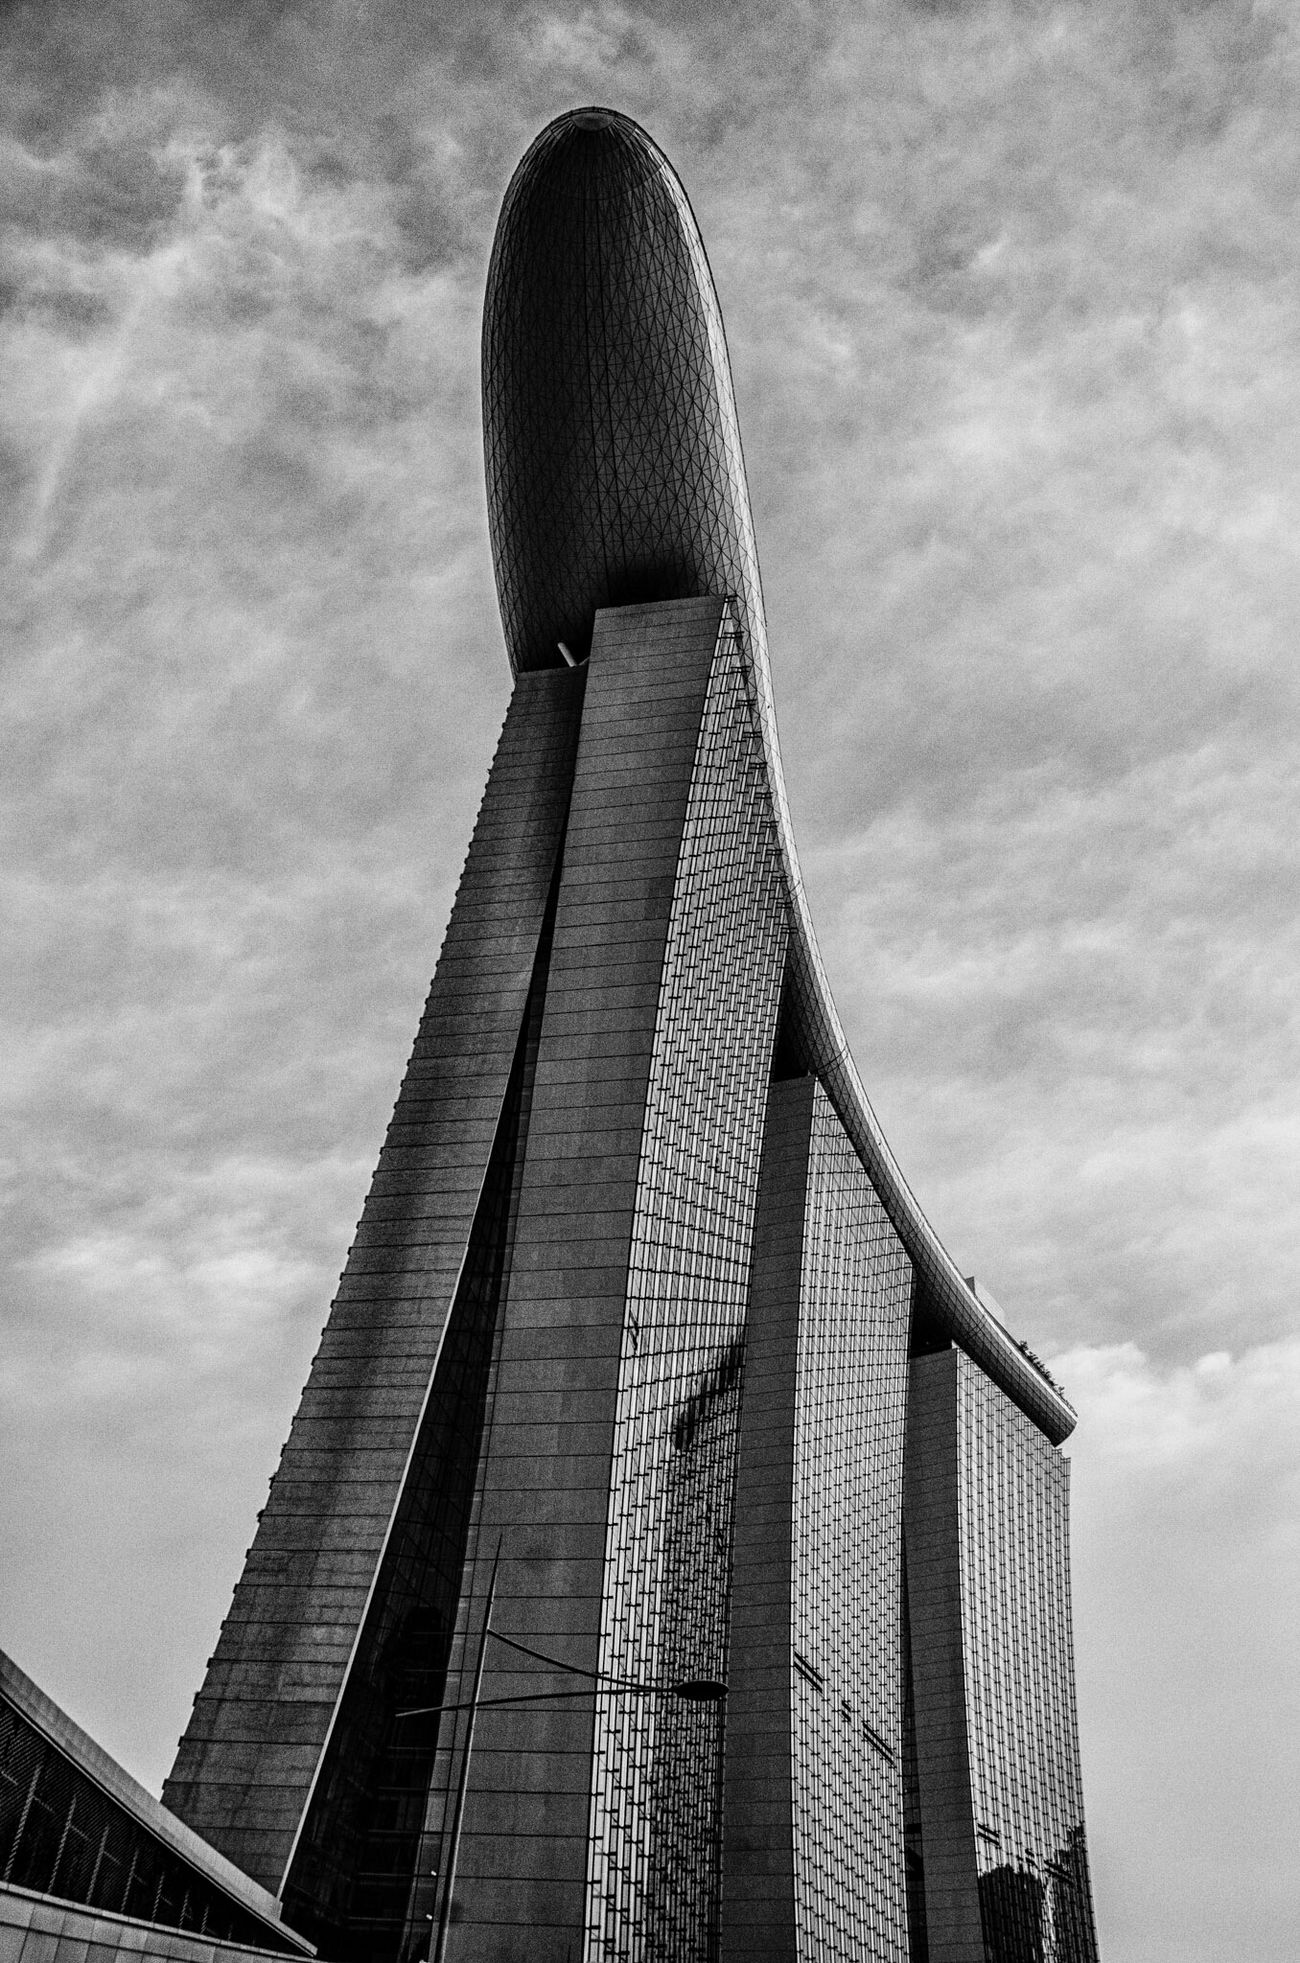 Architecture Built Structure Low Angle View Tower Building Exterior Tall - High Sky Tall Modern Architectural Feature Skyscraper Cloud - Sky Hotel Marina Bay Sands Singapore Travel Tourism Casino Balck And White Traveling